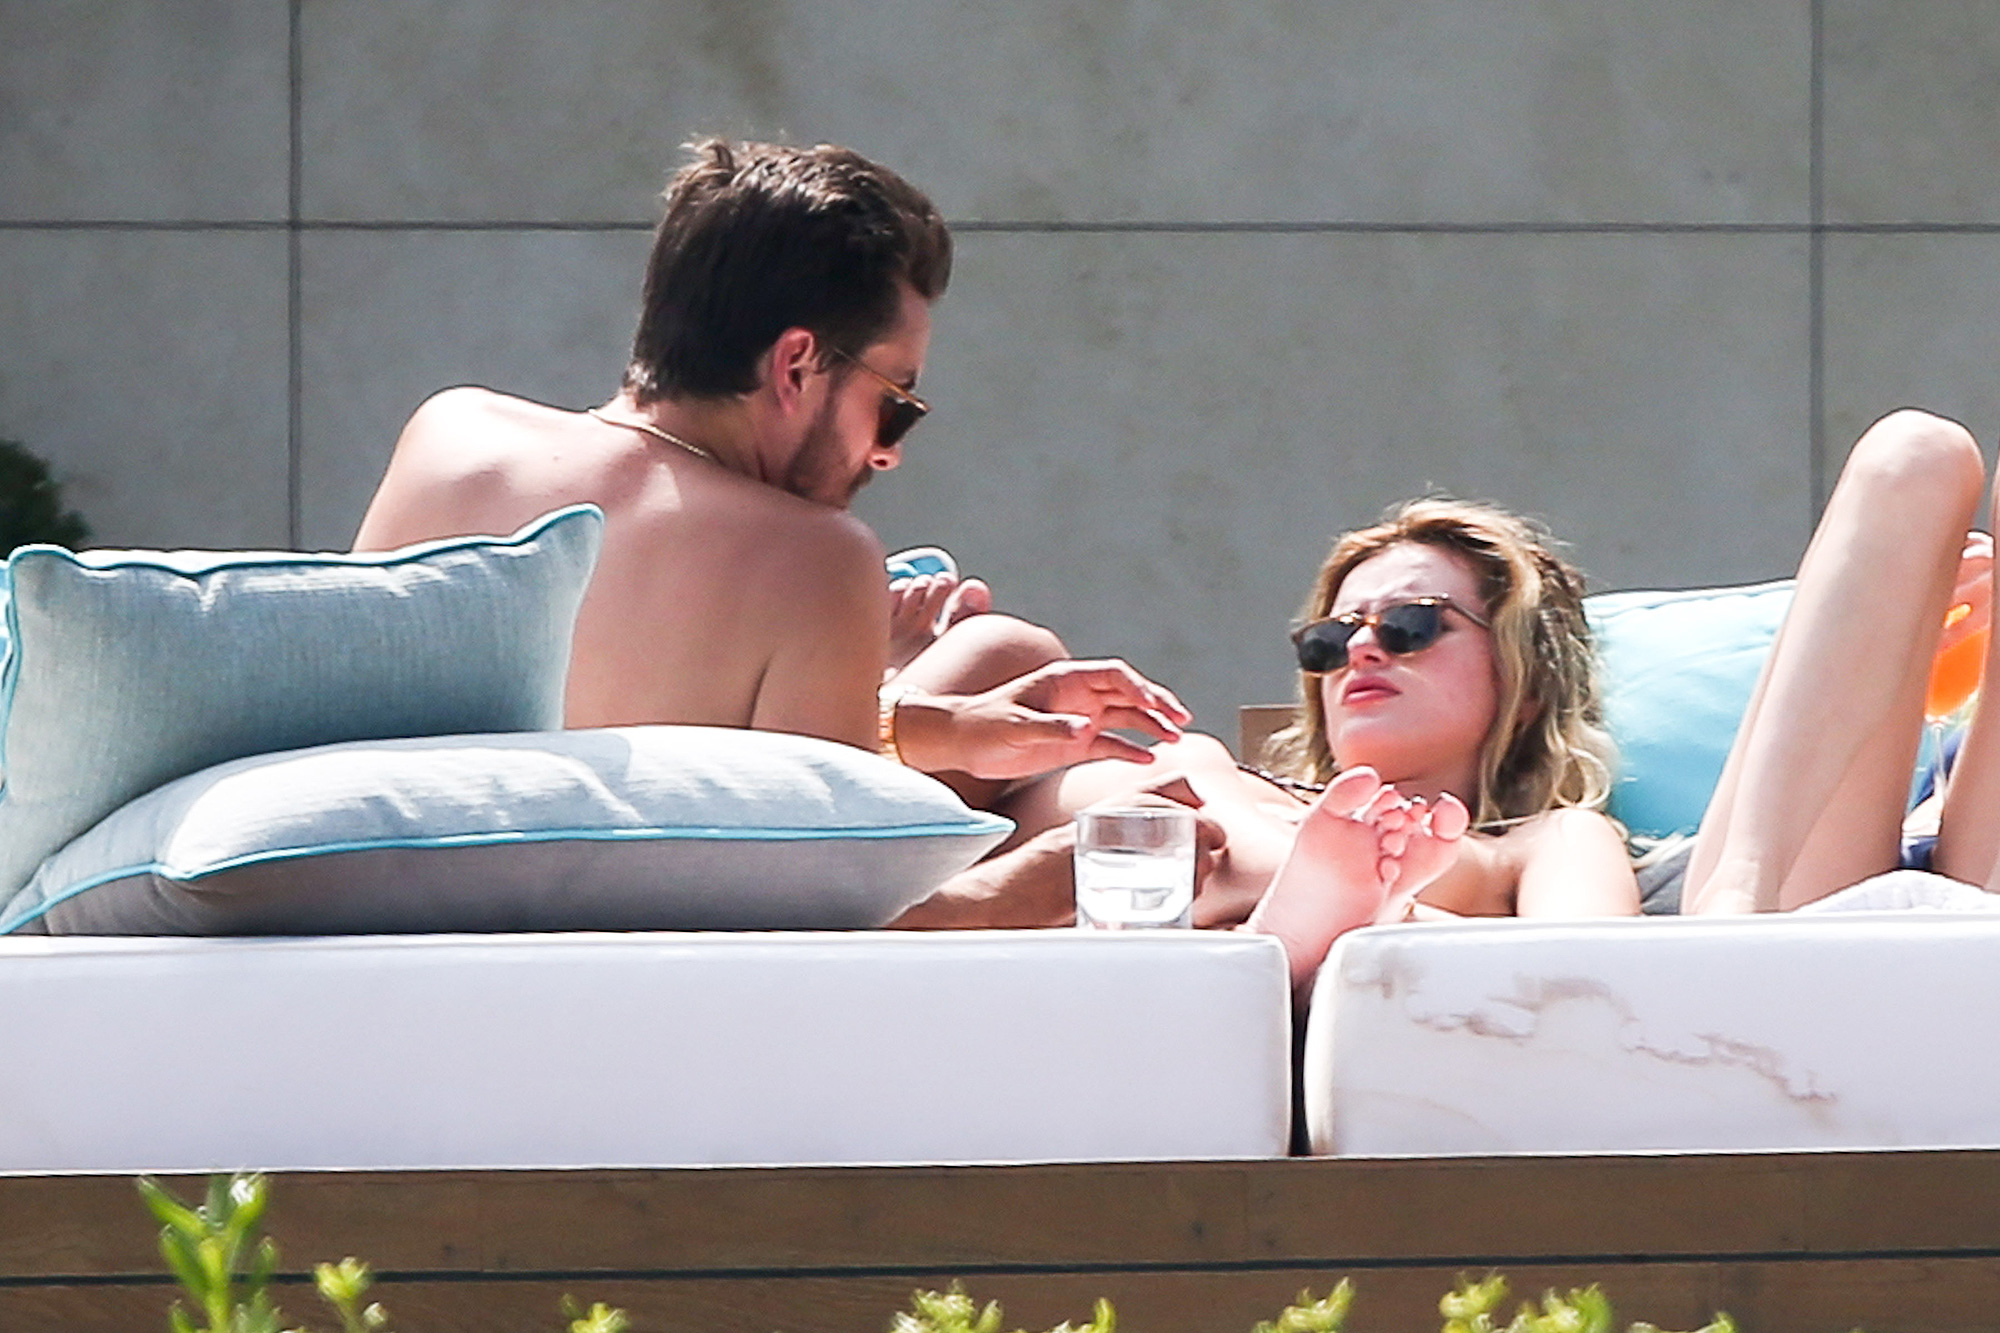 Scott Disick squeezes girlfriend Bella Thornes breast as they sunbathe in Cannes